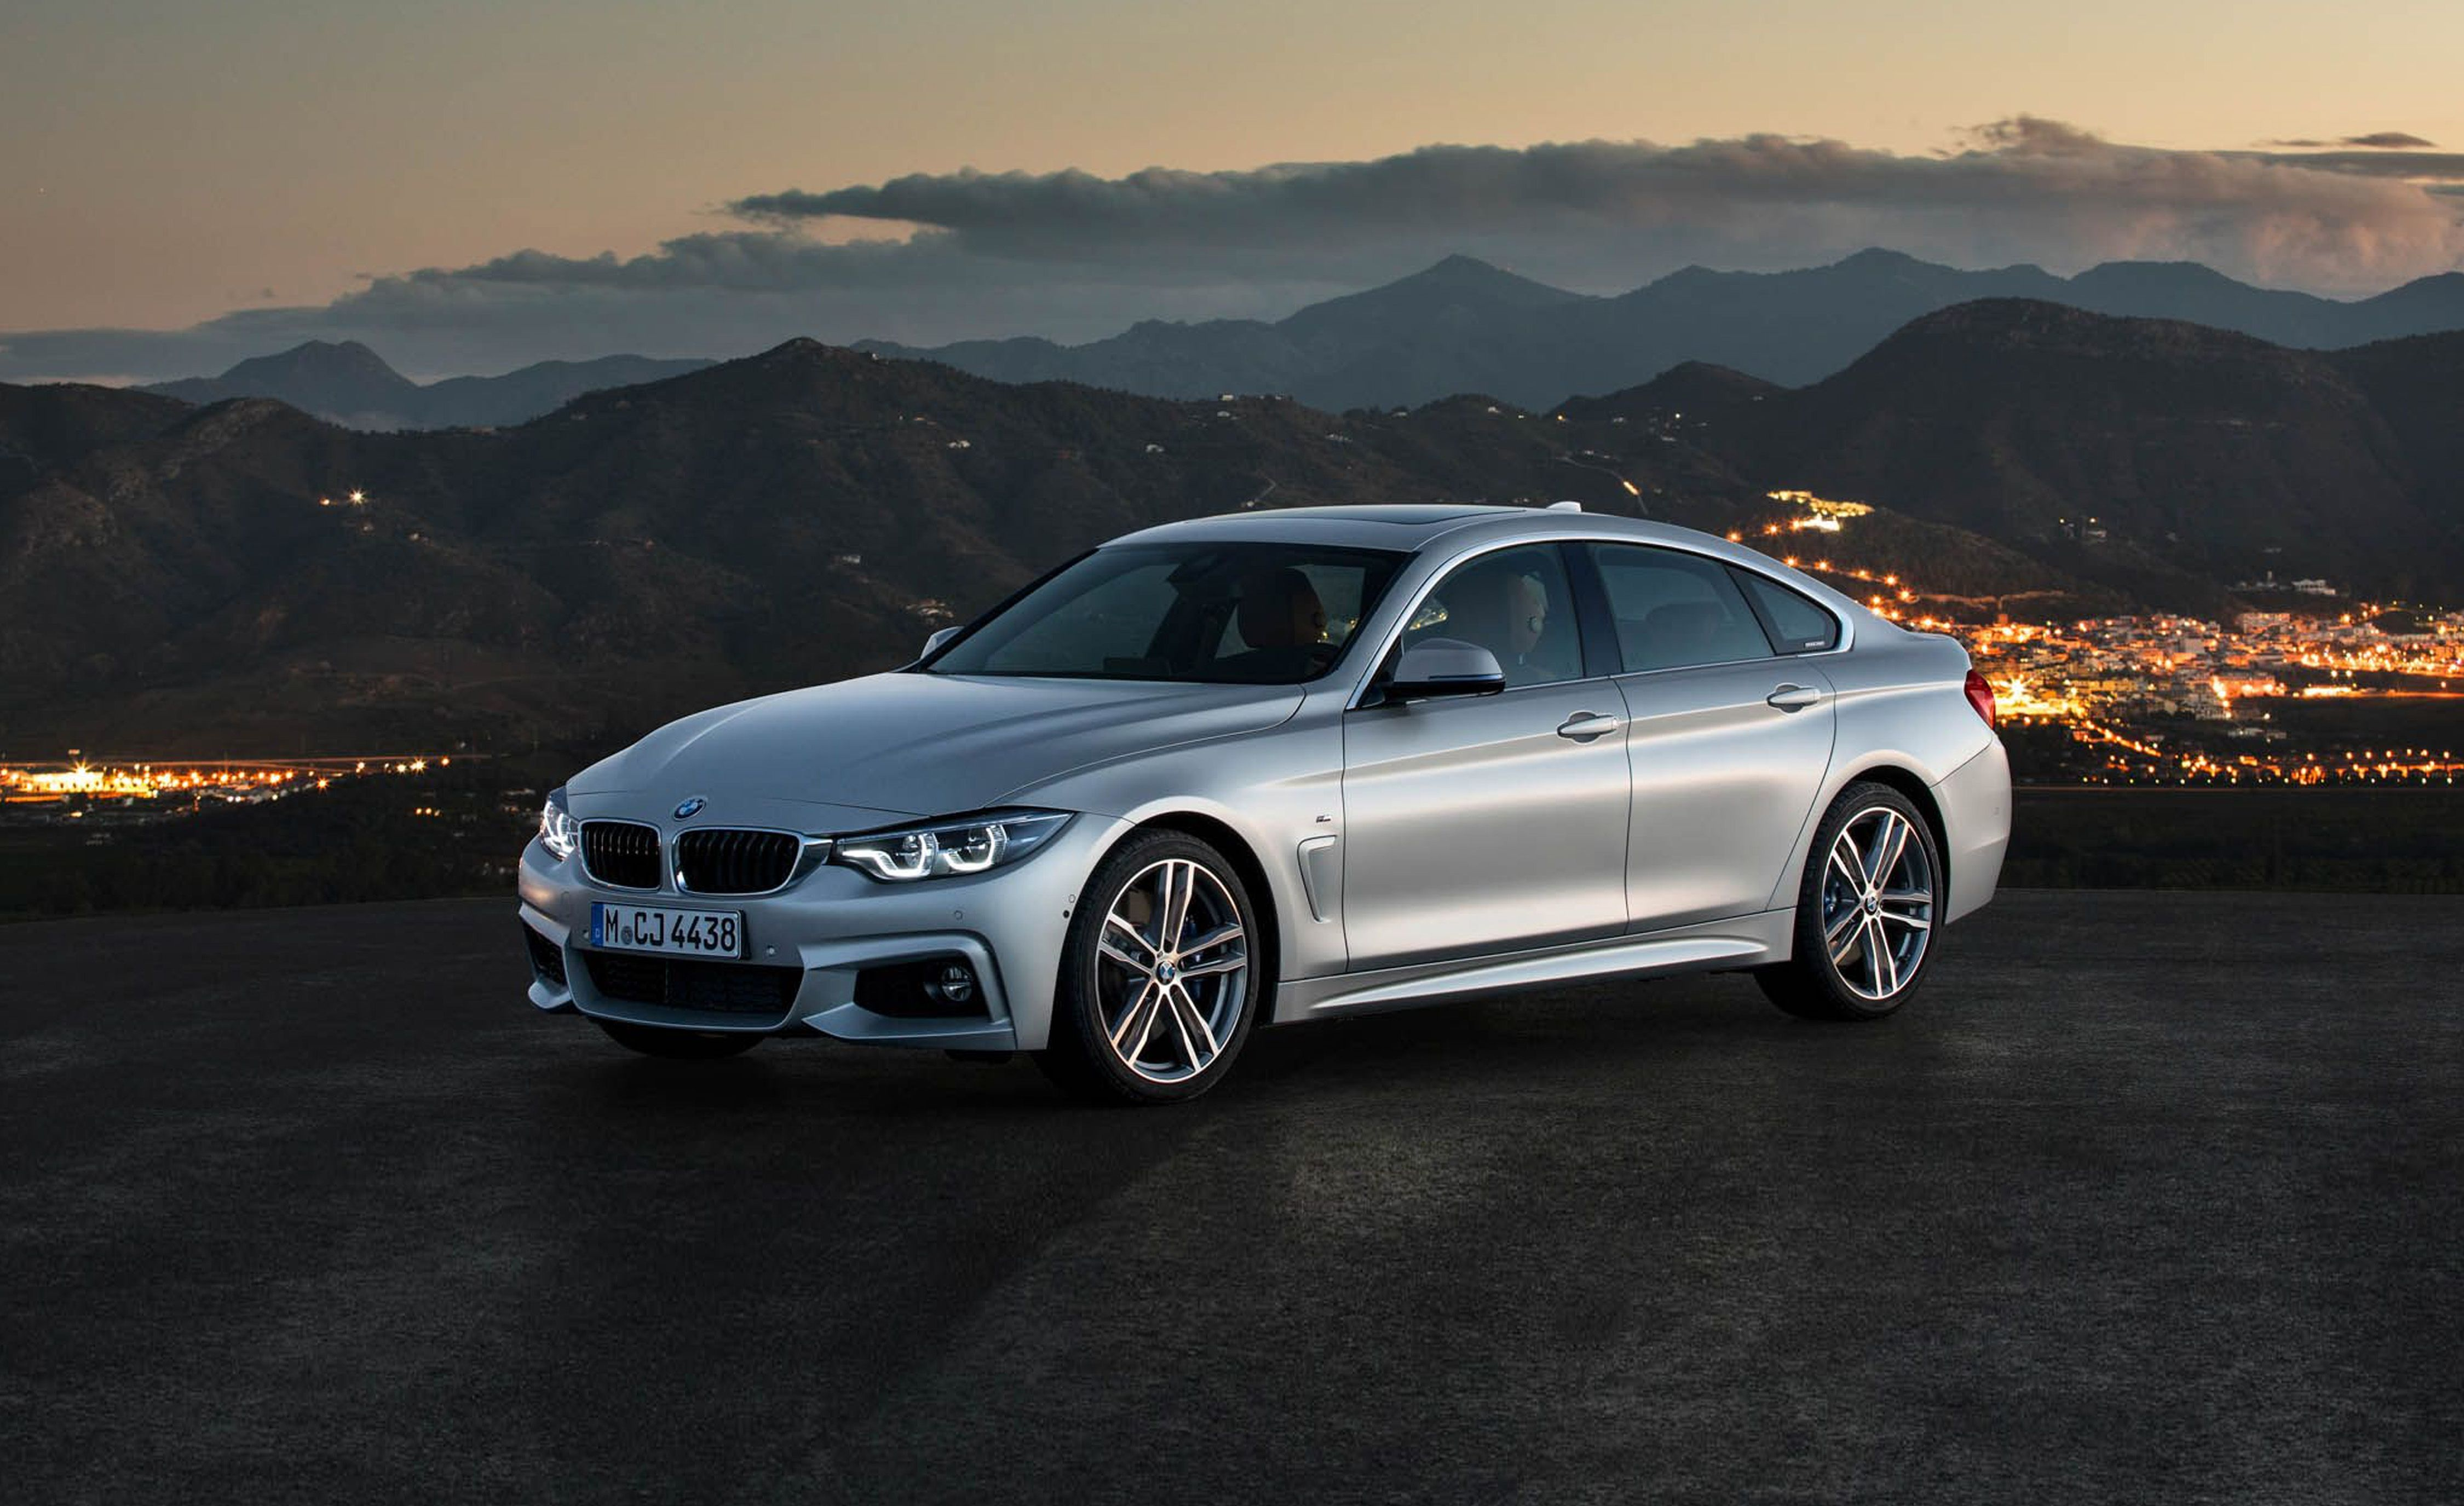 2020 bmw 4 series gran coupe reviews bmw 4 series gran. Black Bedroom Furniture Sets. Home Design Ideas